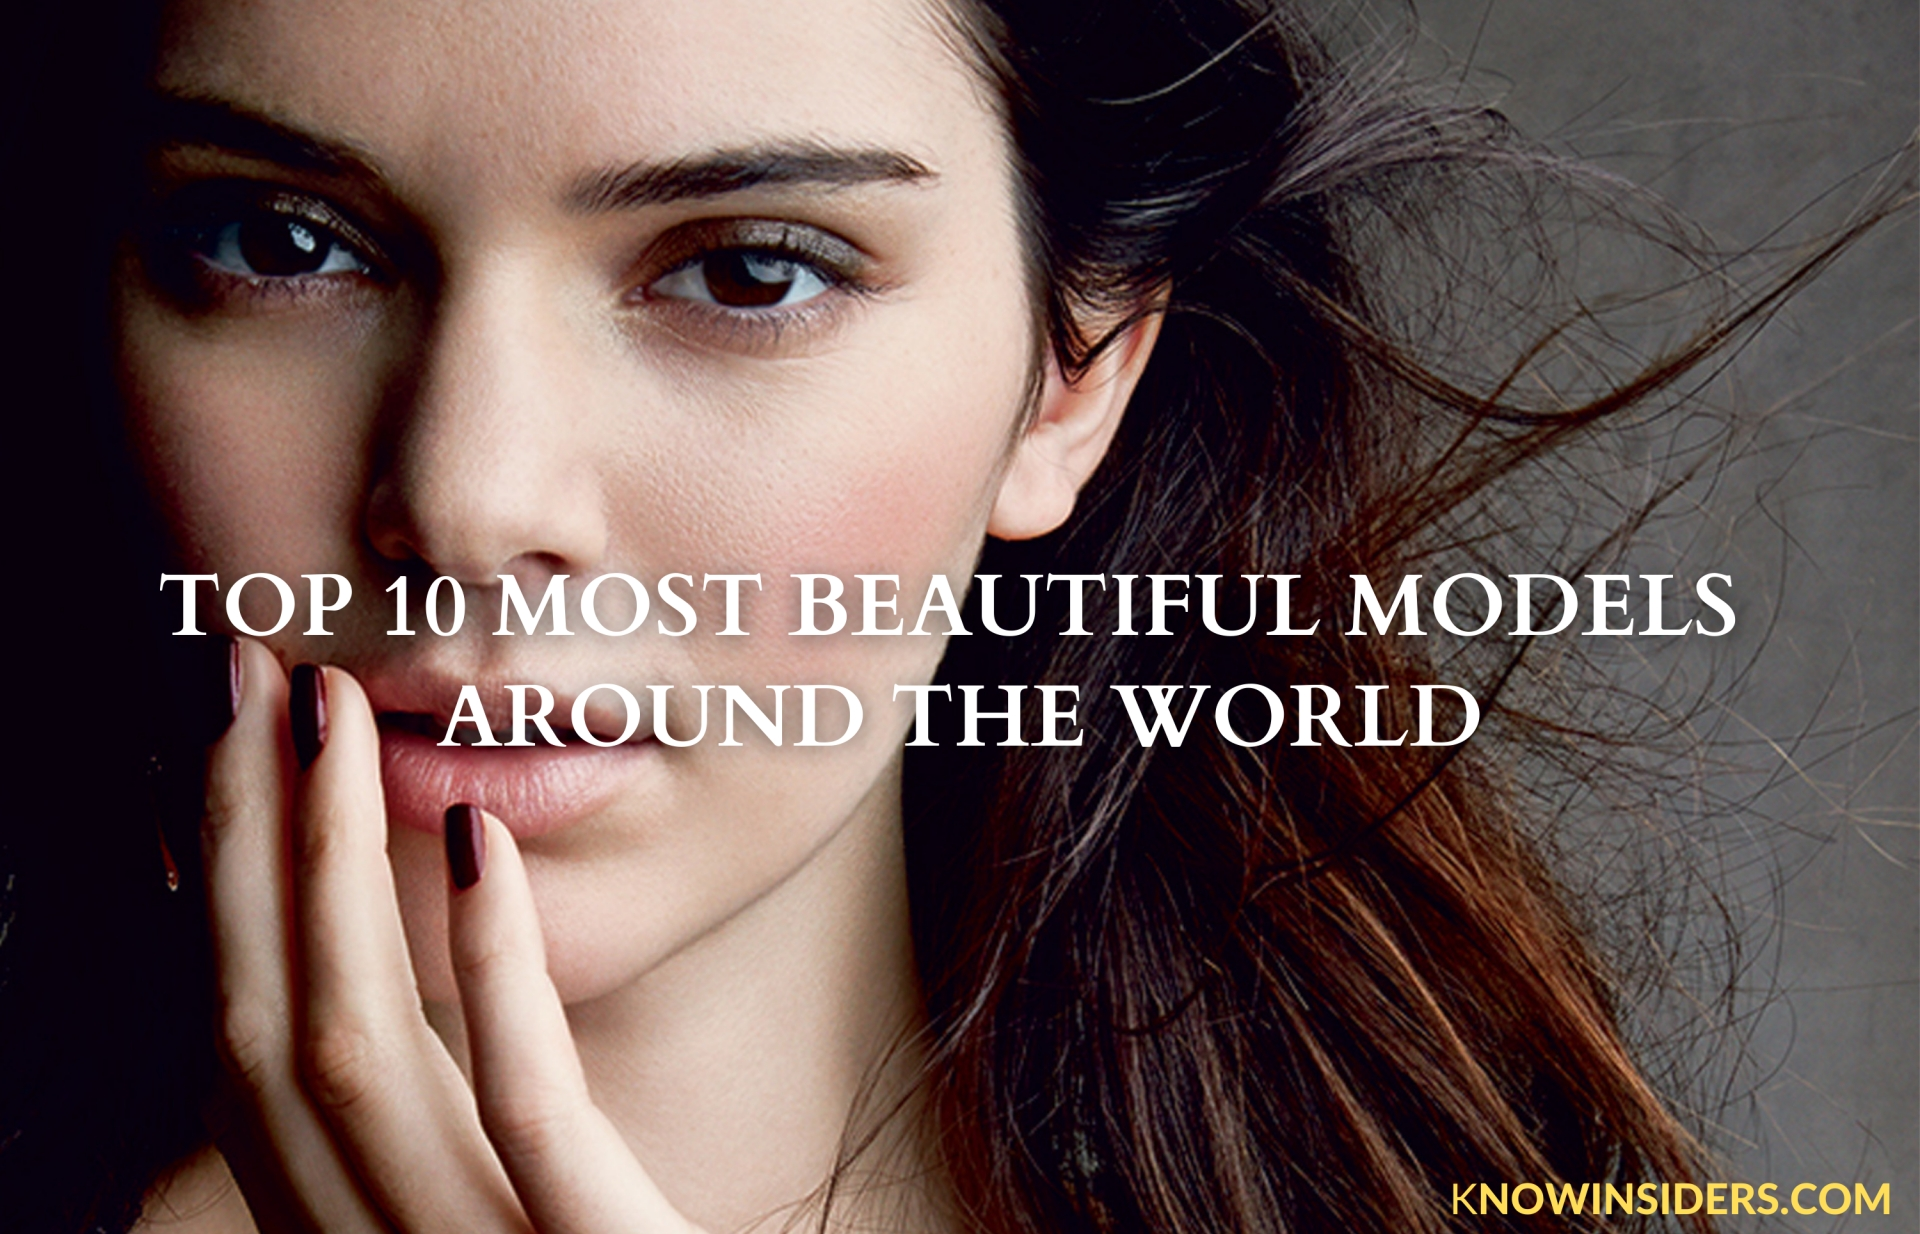 Top 10 Most Beautiful Models in the World